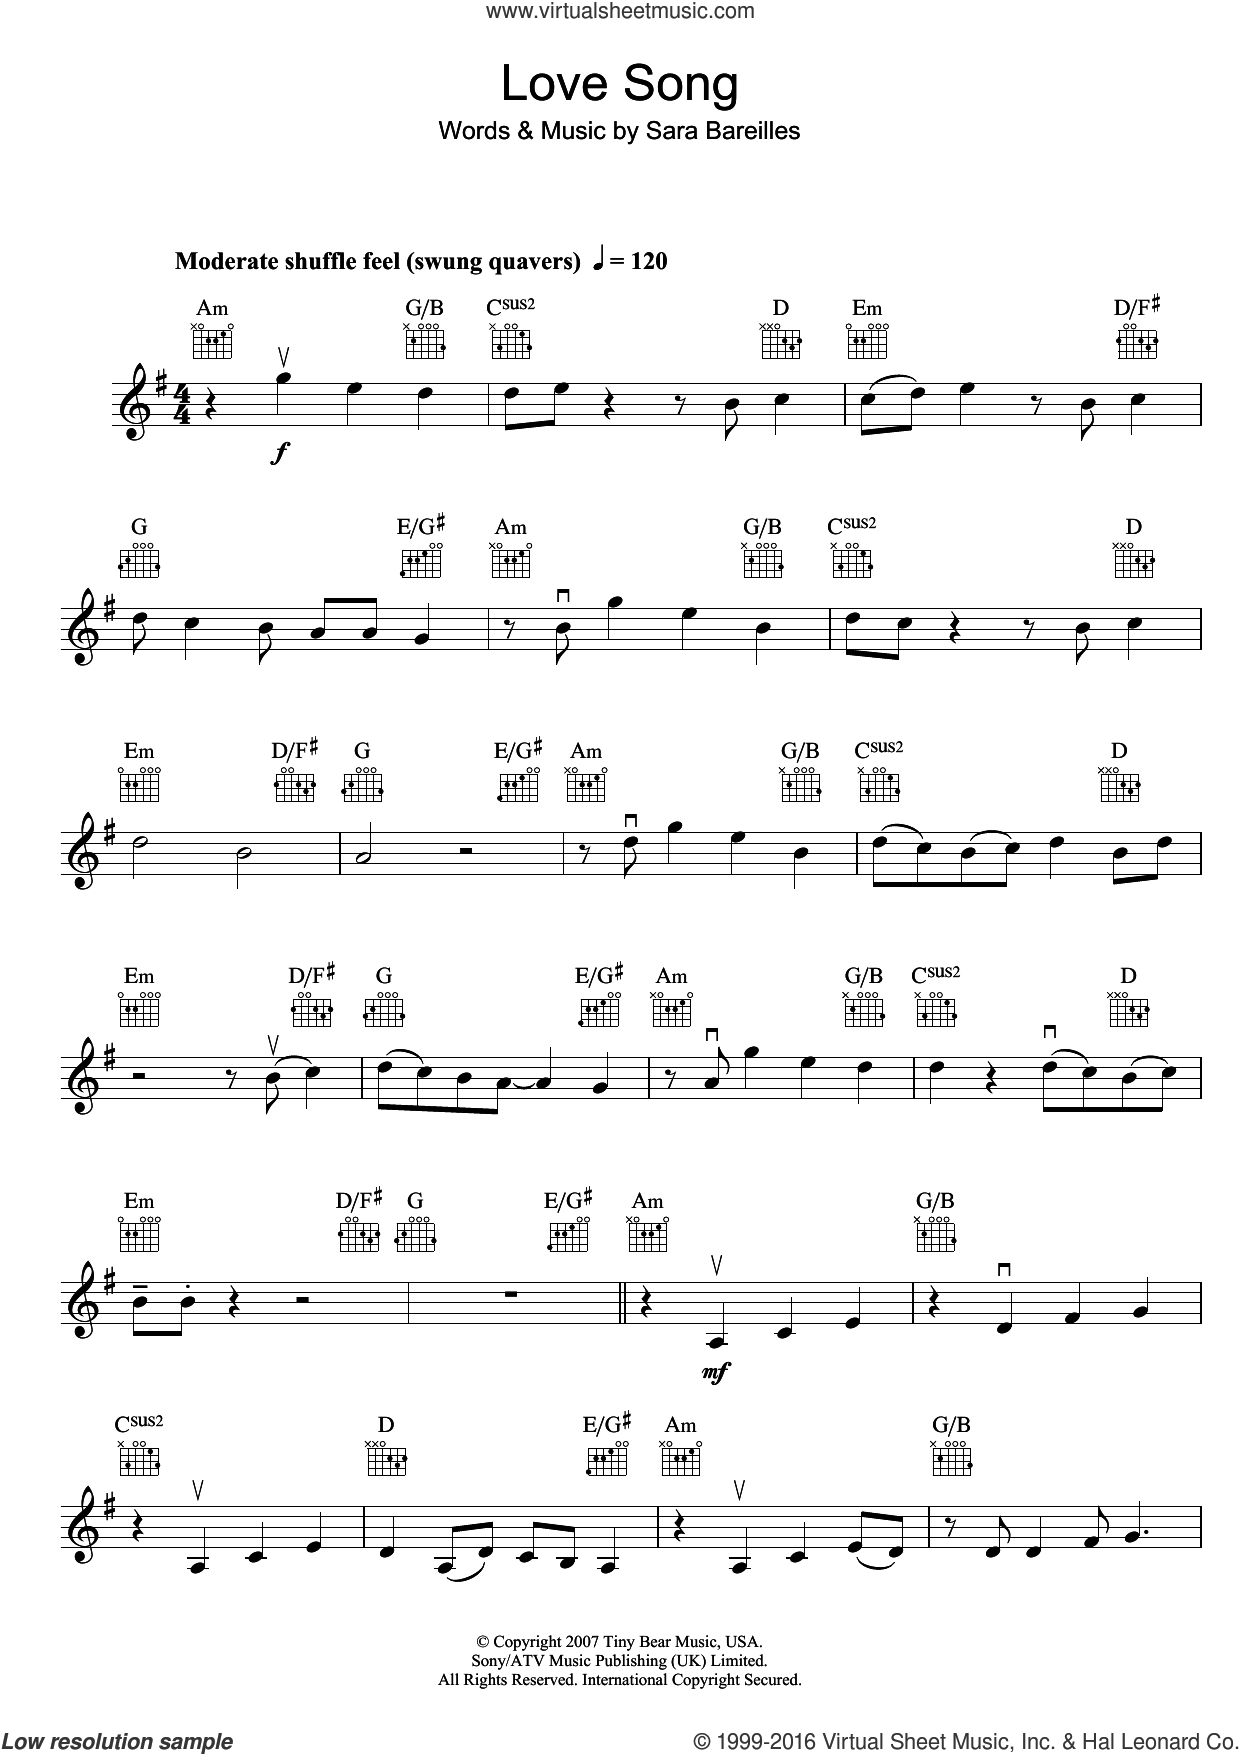 Love Song sheet music for violin solo by Sara Bareilles, intermediate skill level